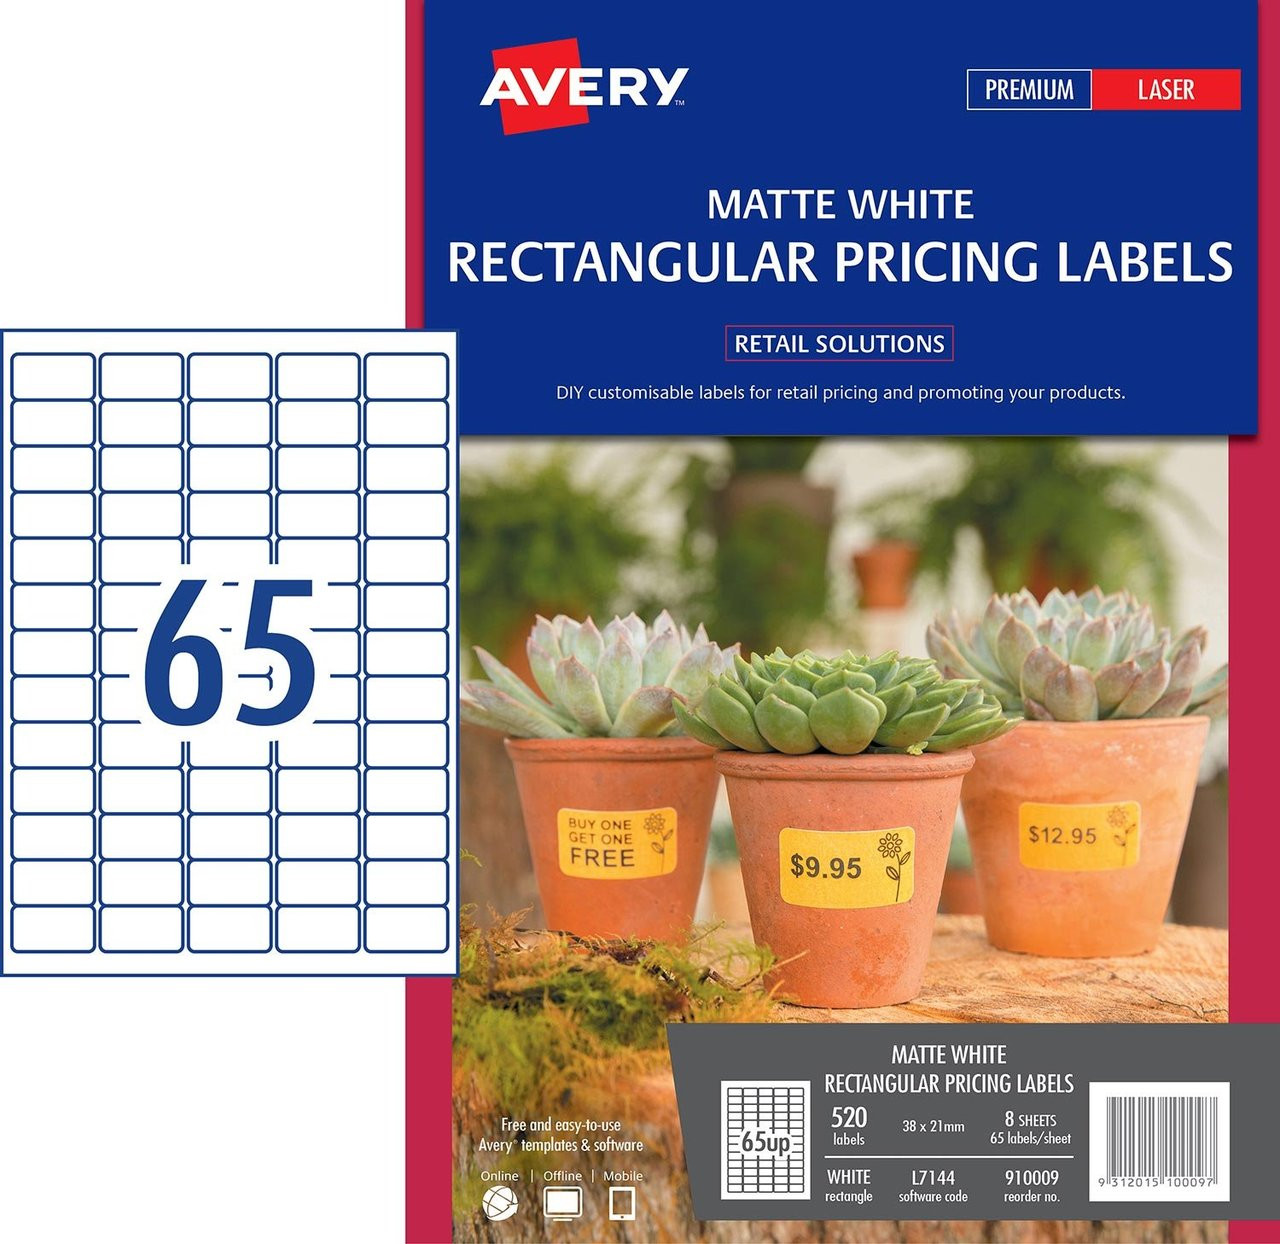 abe4cee12b01 AVERY 910009 MATTE WHITE RECTANGULAR PRICING LABELS - L7144 - 520/PACK - 38  X 21MM |65UP